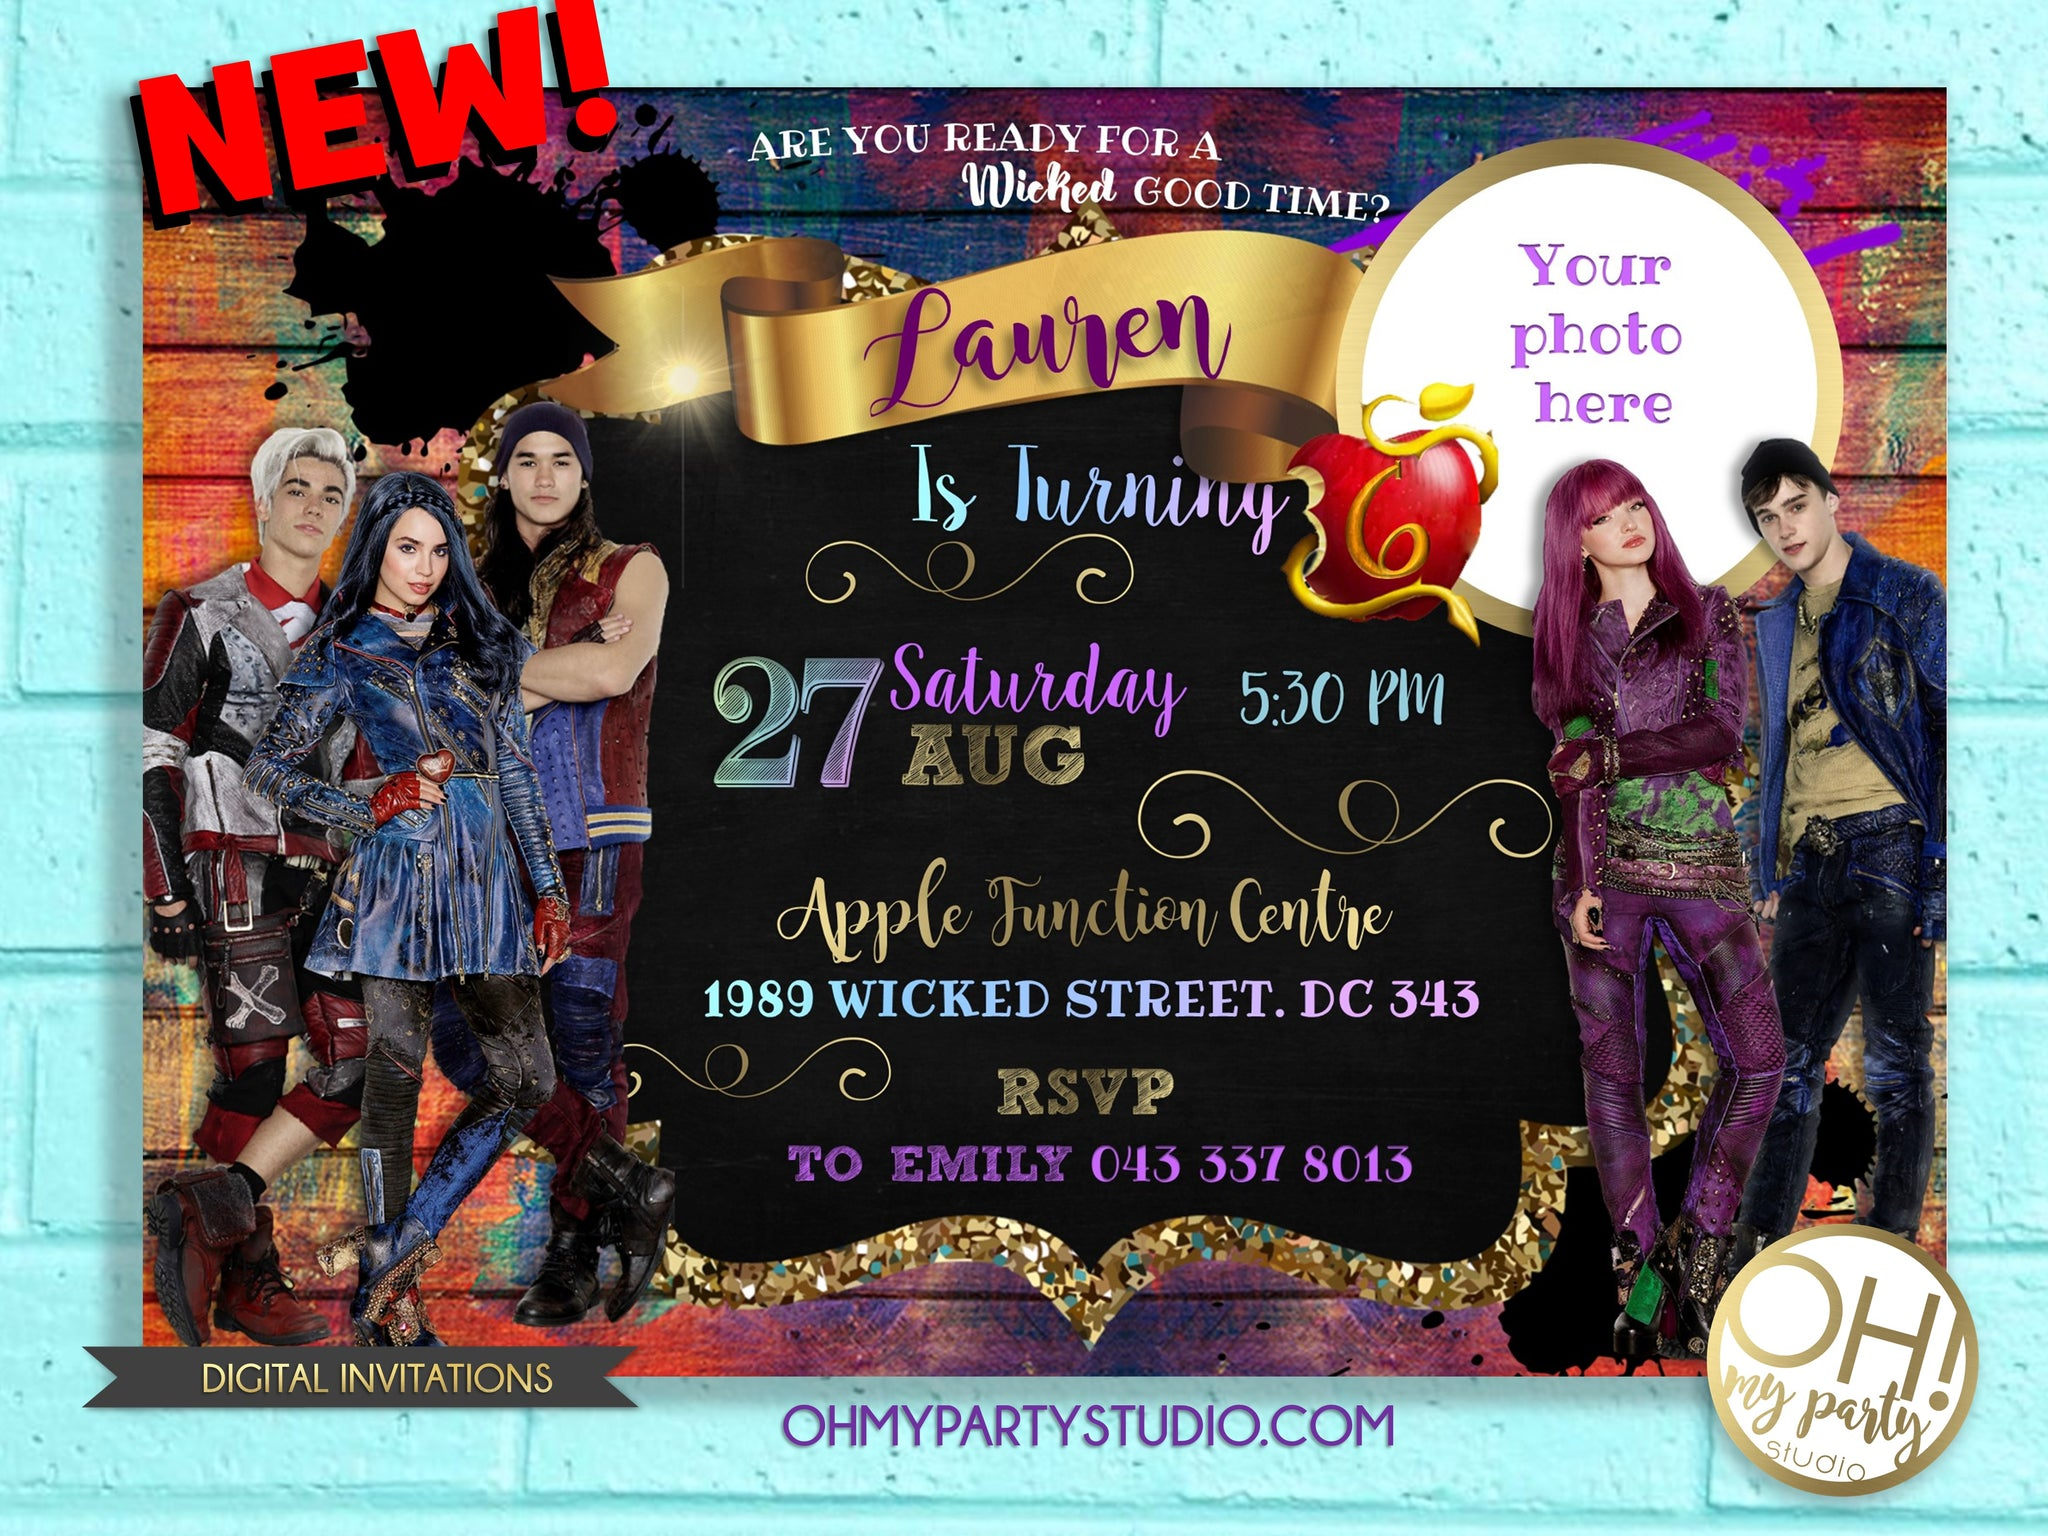 DESCENDANTS DISNEY PARTY, DESCENDANTS 3 INVITATIONS, DESCENDANTS 3 INVITATION, DESCENDANTS DISNEY INVITATIONS, DESCENDANTS DISNEY INVITATION, DESCENDANTS DISNEY, DESCENDANTS ,DESCENDANTS INVITE ,DESCENDANTS INVITATIONS, DESCENDANTS BIRTHDAY PARTY, DESCENDANTS INVITATION